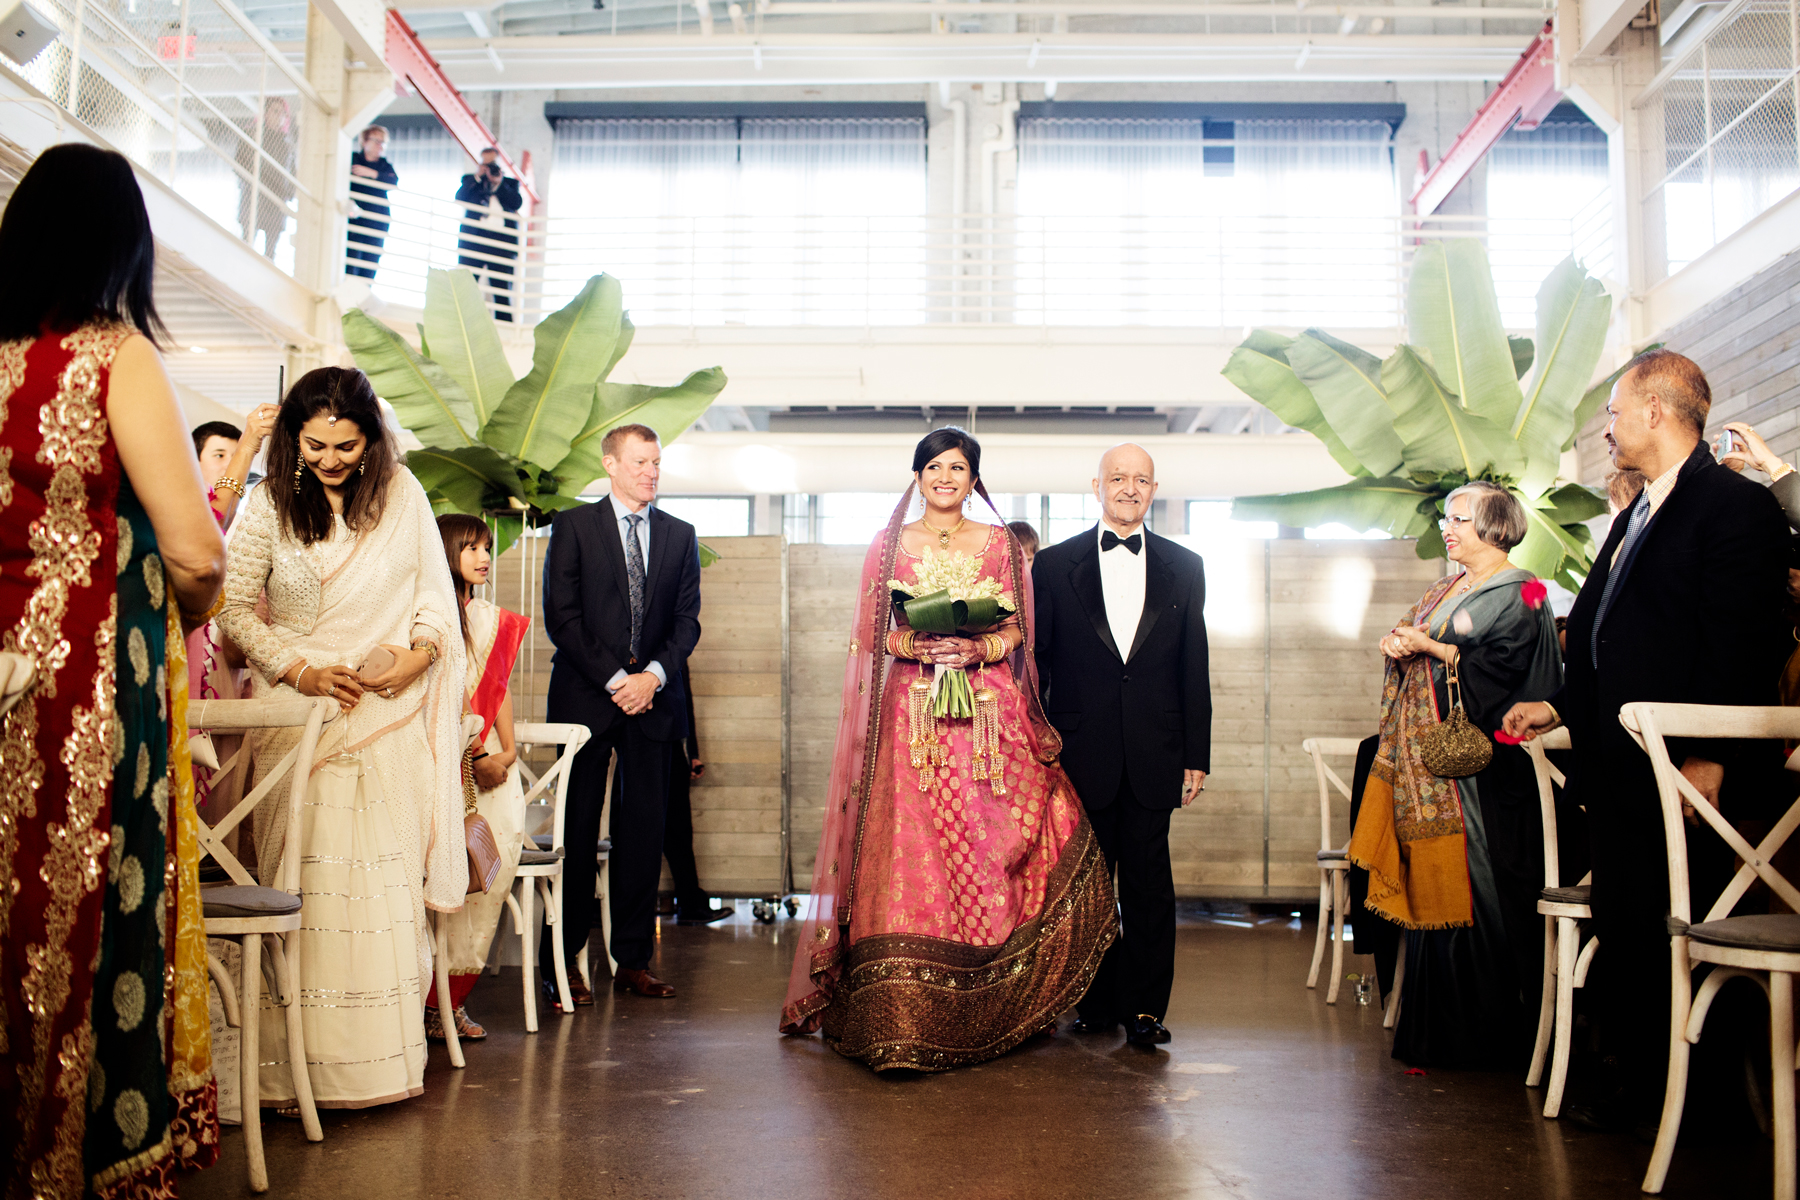 Which Side Does the Father of the Bride Traditionally Stand on During the Processional?